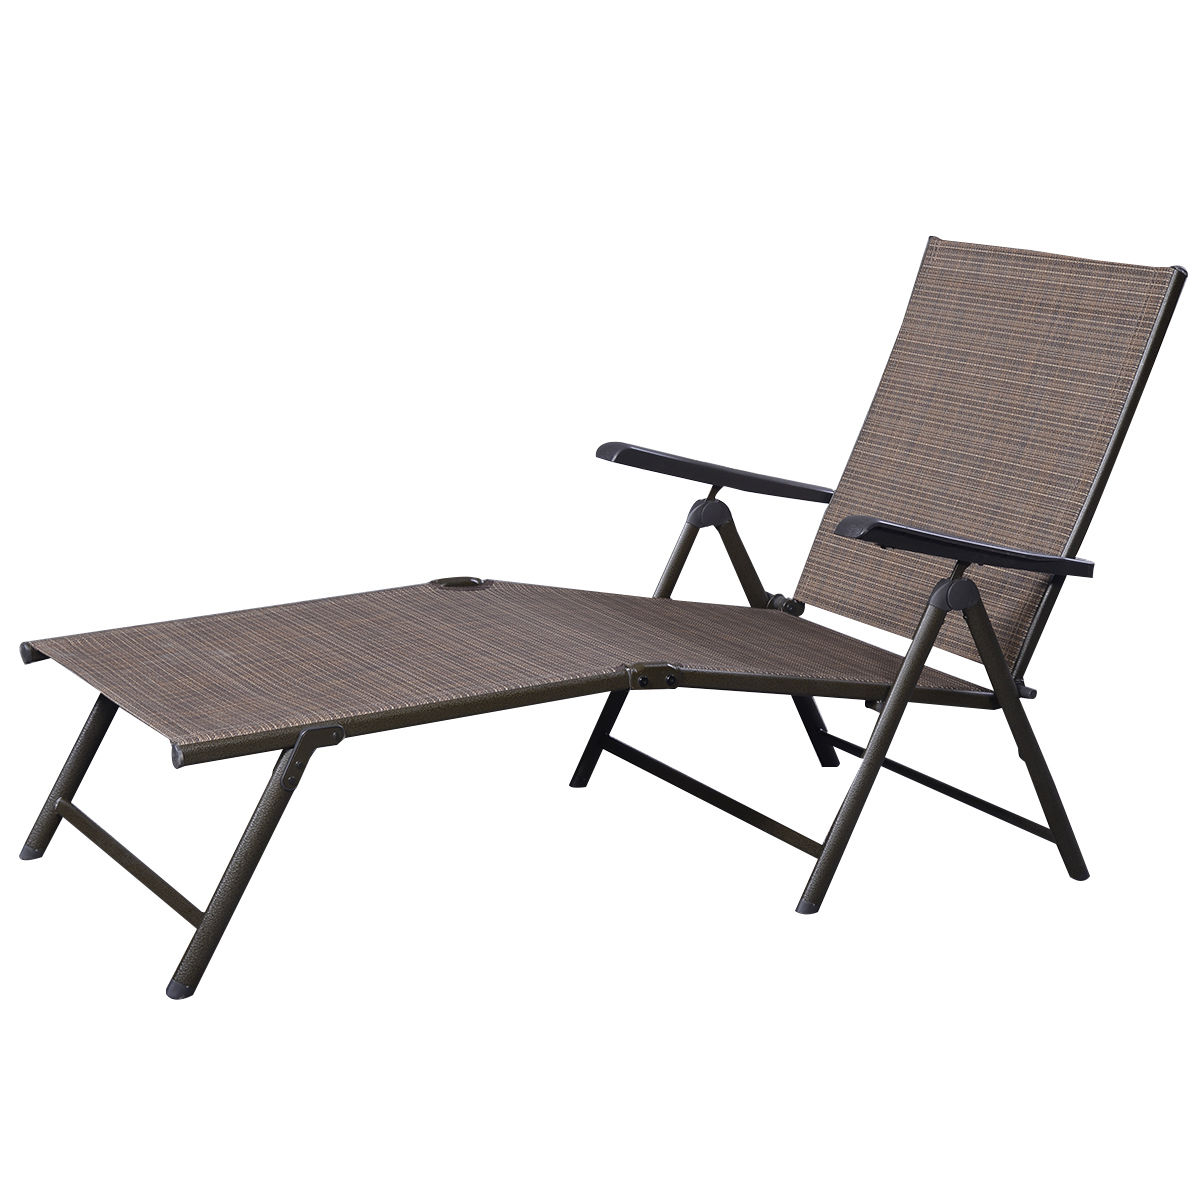 2020 Reclining Sling Lounge Chairs Throughout Outdoor Adjustable Chaise Lounge Chair (Gallery 12 of 25)